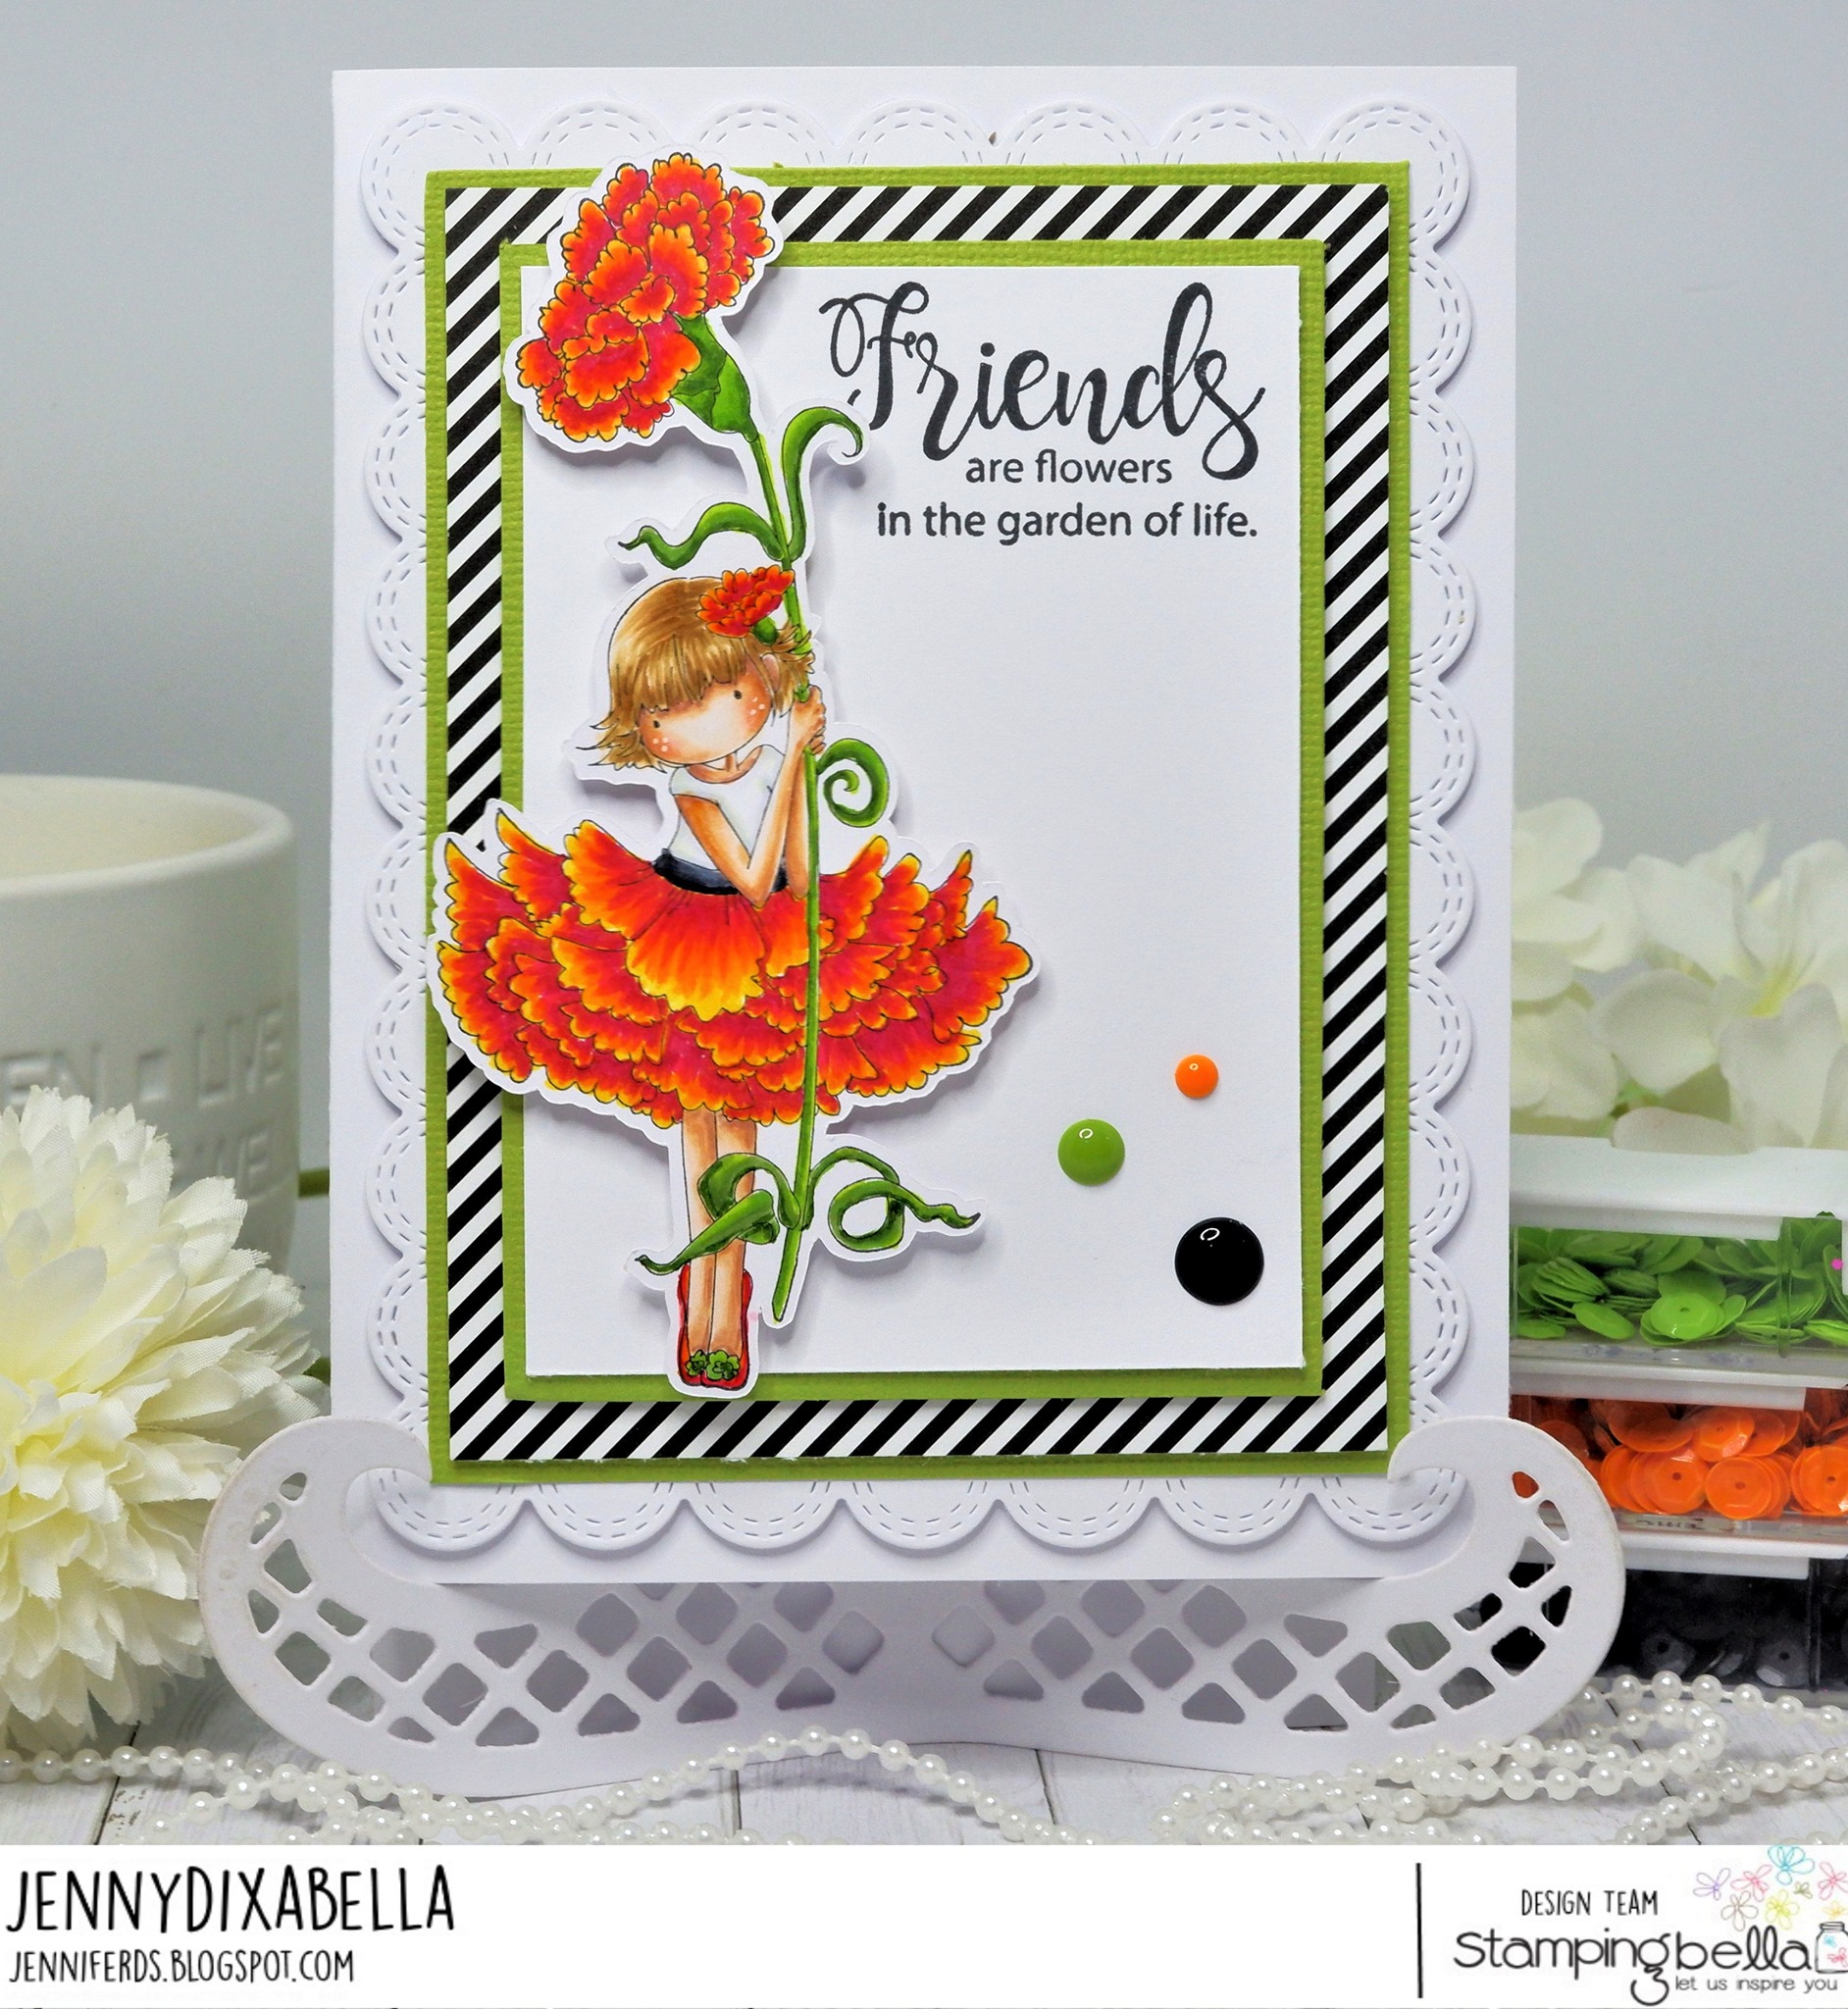 www.stampingbella.com: rubber stamp used TINY TOWNIE GARDEN GIRL WITH A CARNATION card by Jenny Dix